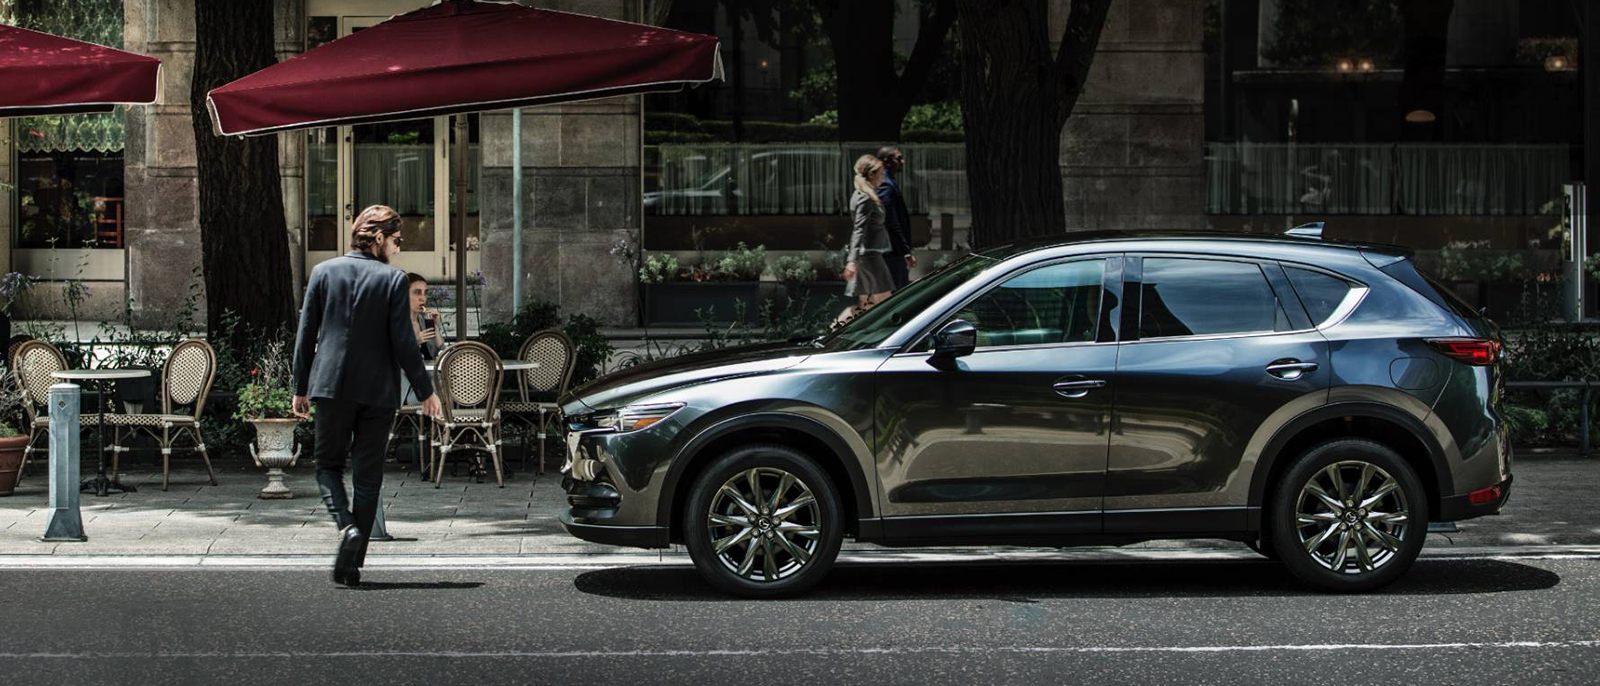 Gray Mazda CX-5 driving on a road